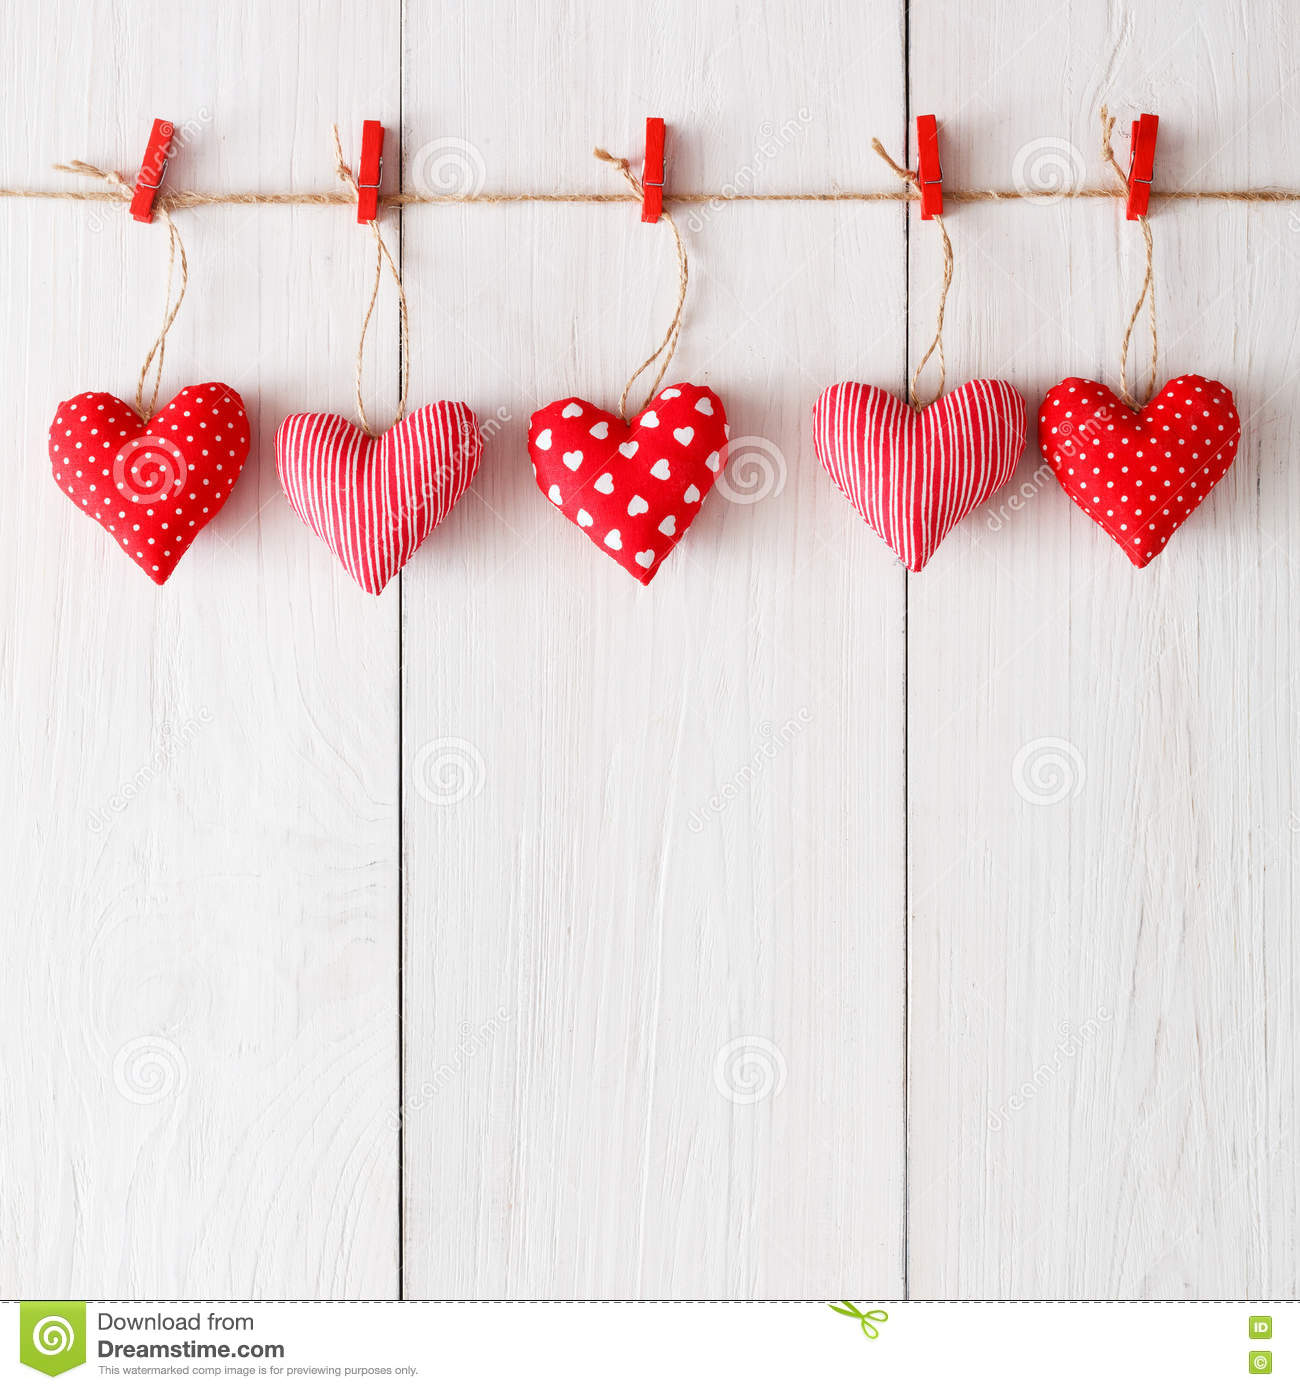 Valentine Day Background Pillow Hearts Border On Wood Copy Space